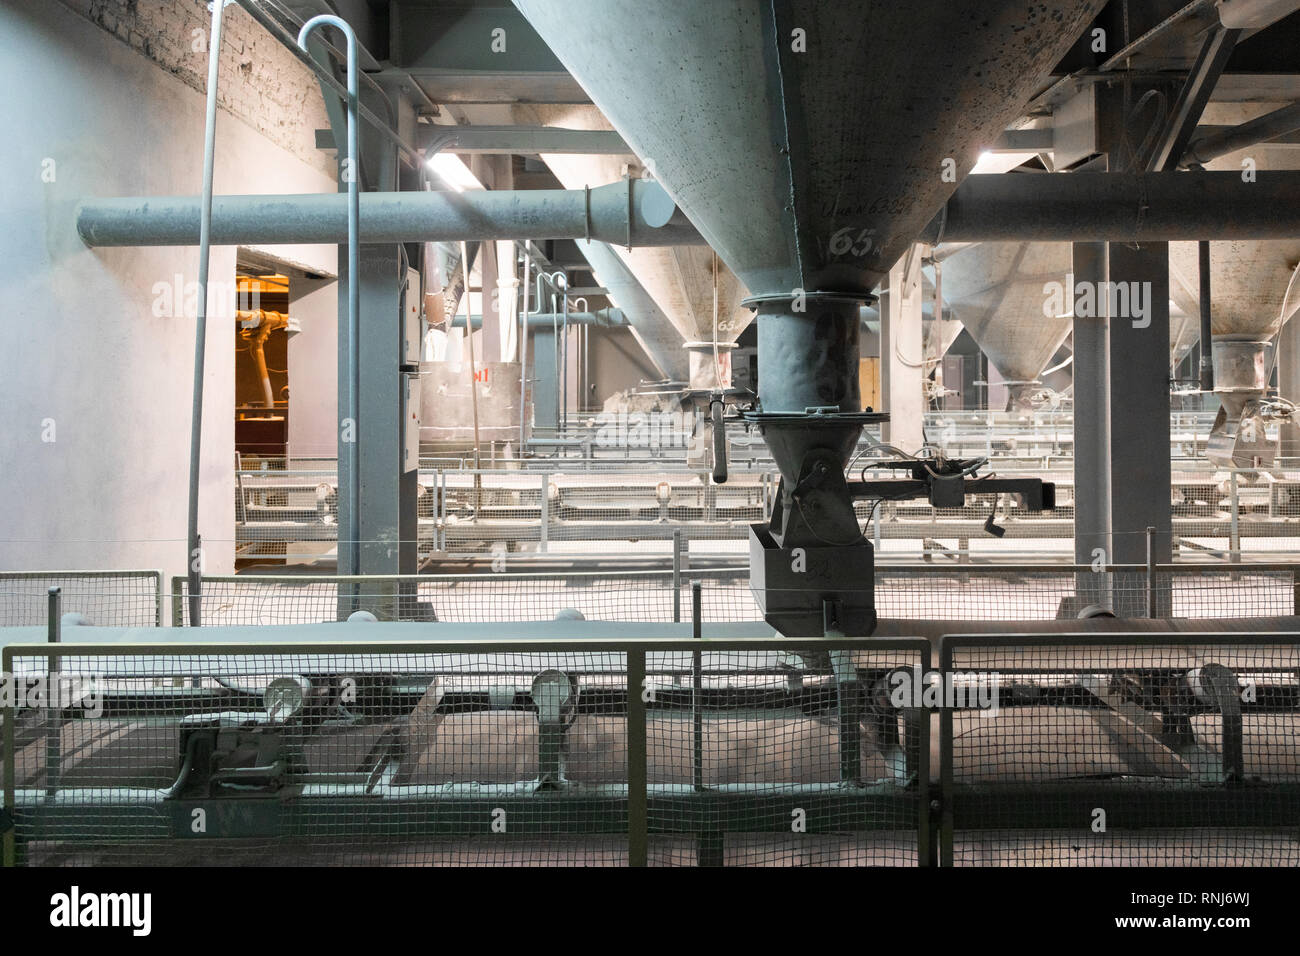 cement plant inside view Stock Photo